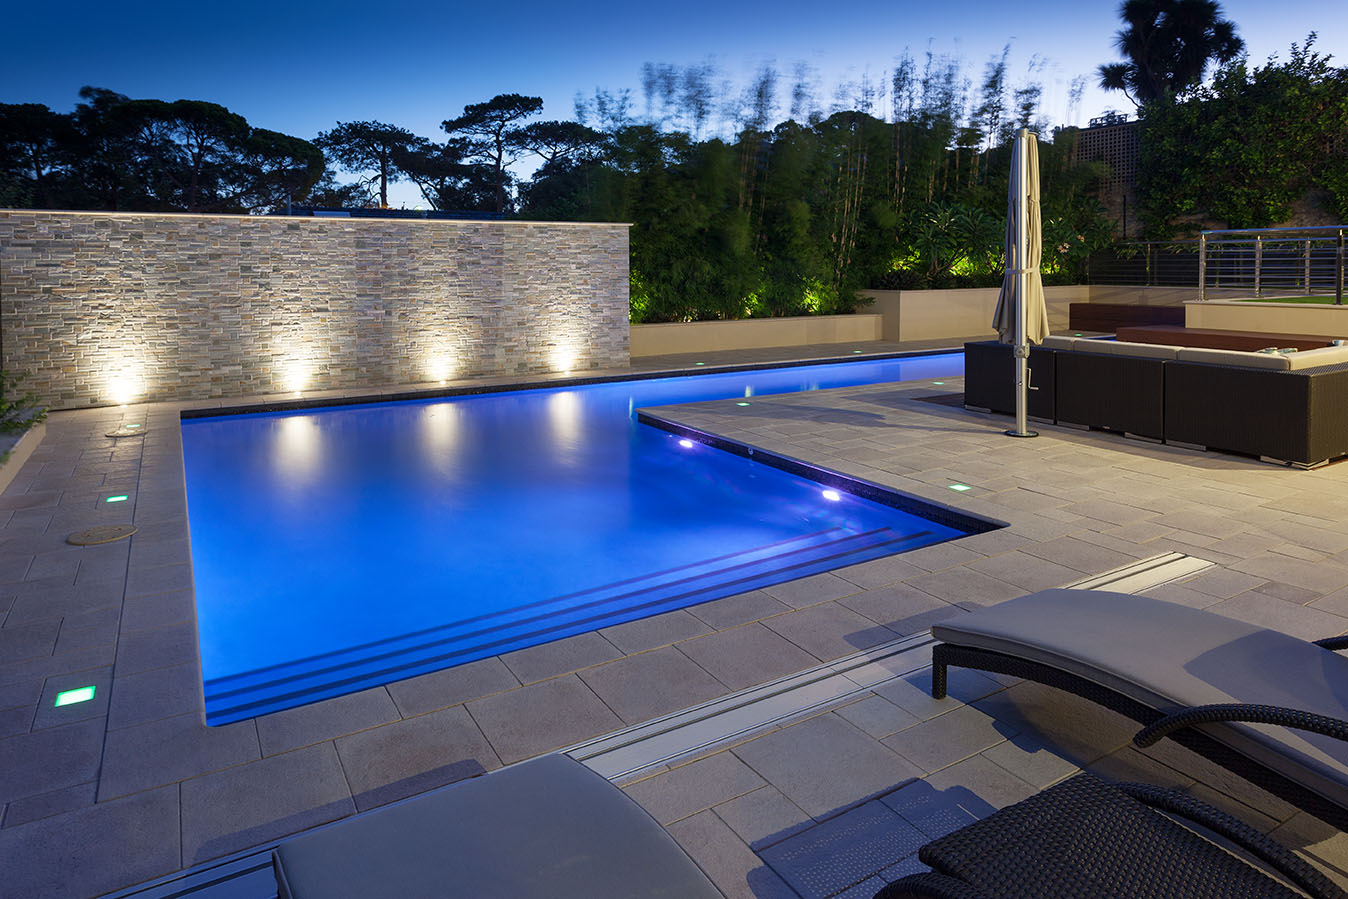 pools by design feature in new spasa advert pools by